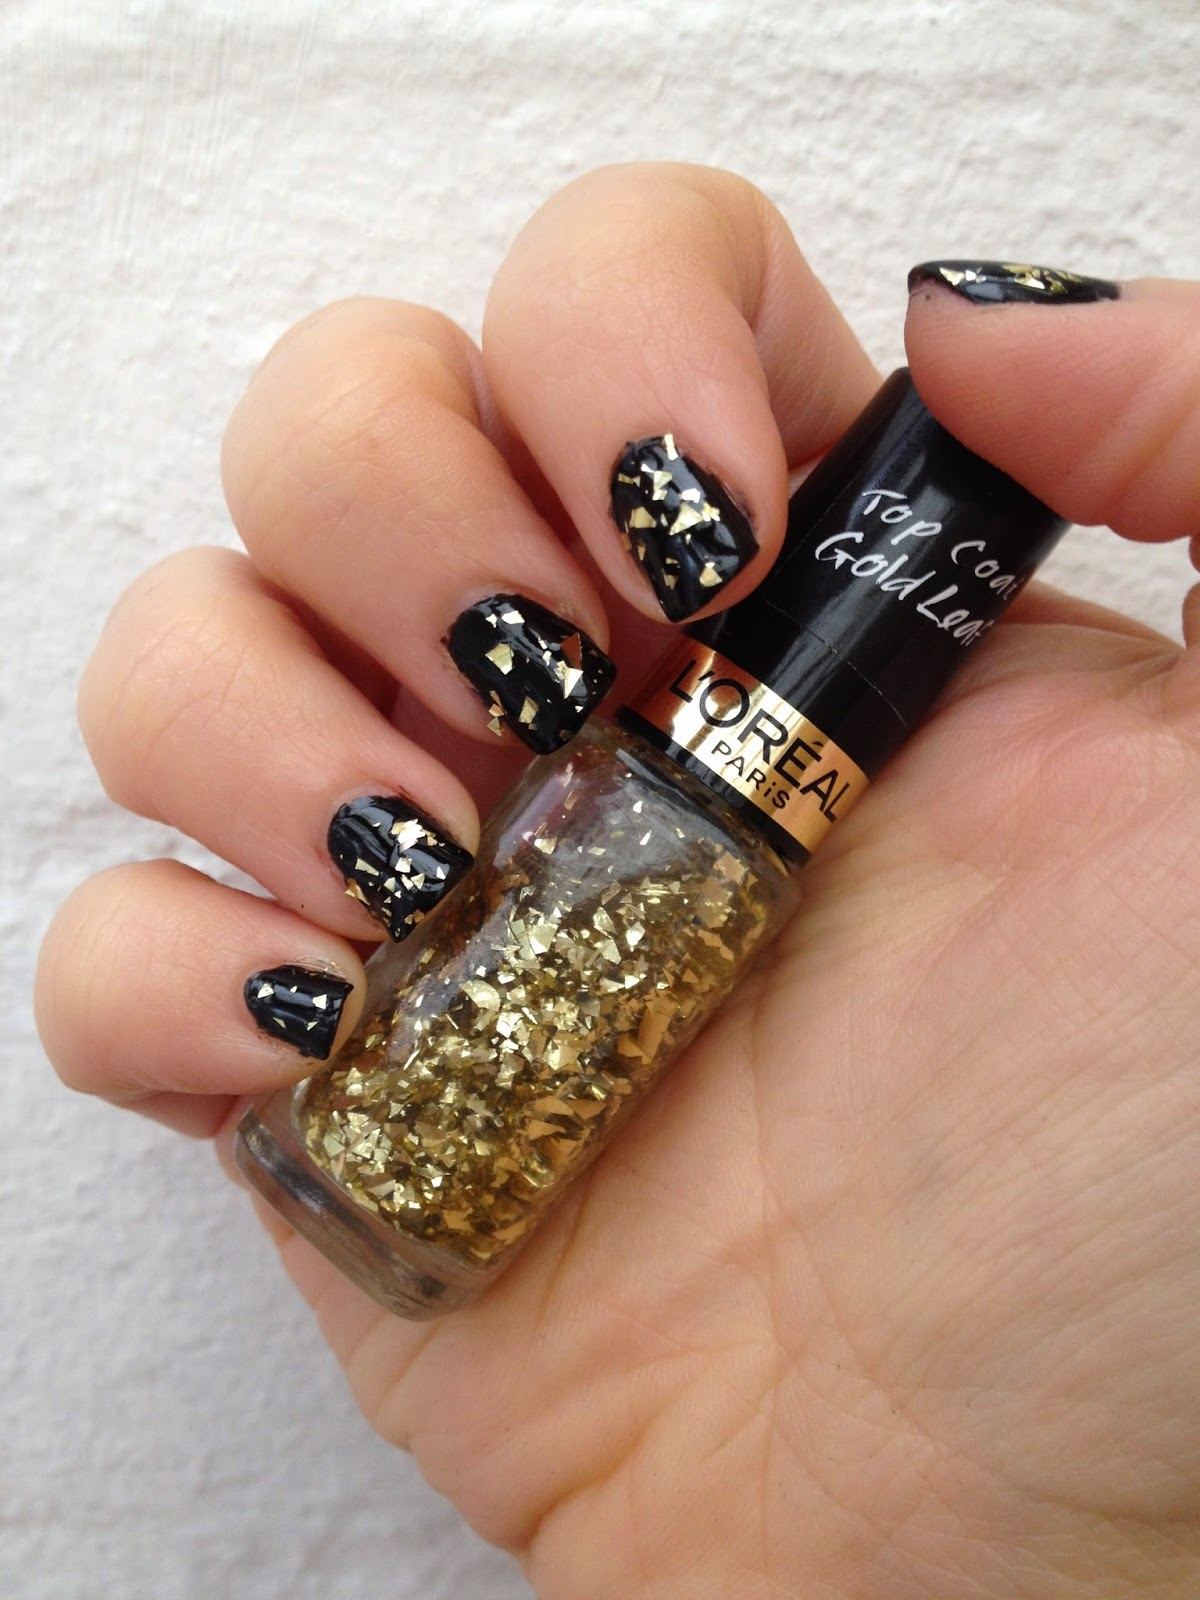 Gold Leaf Top Coat Over Black Nail Polish Party Nails